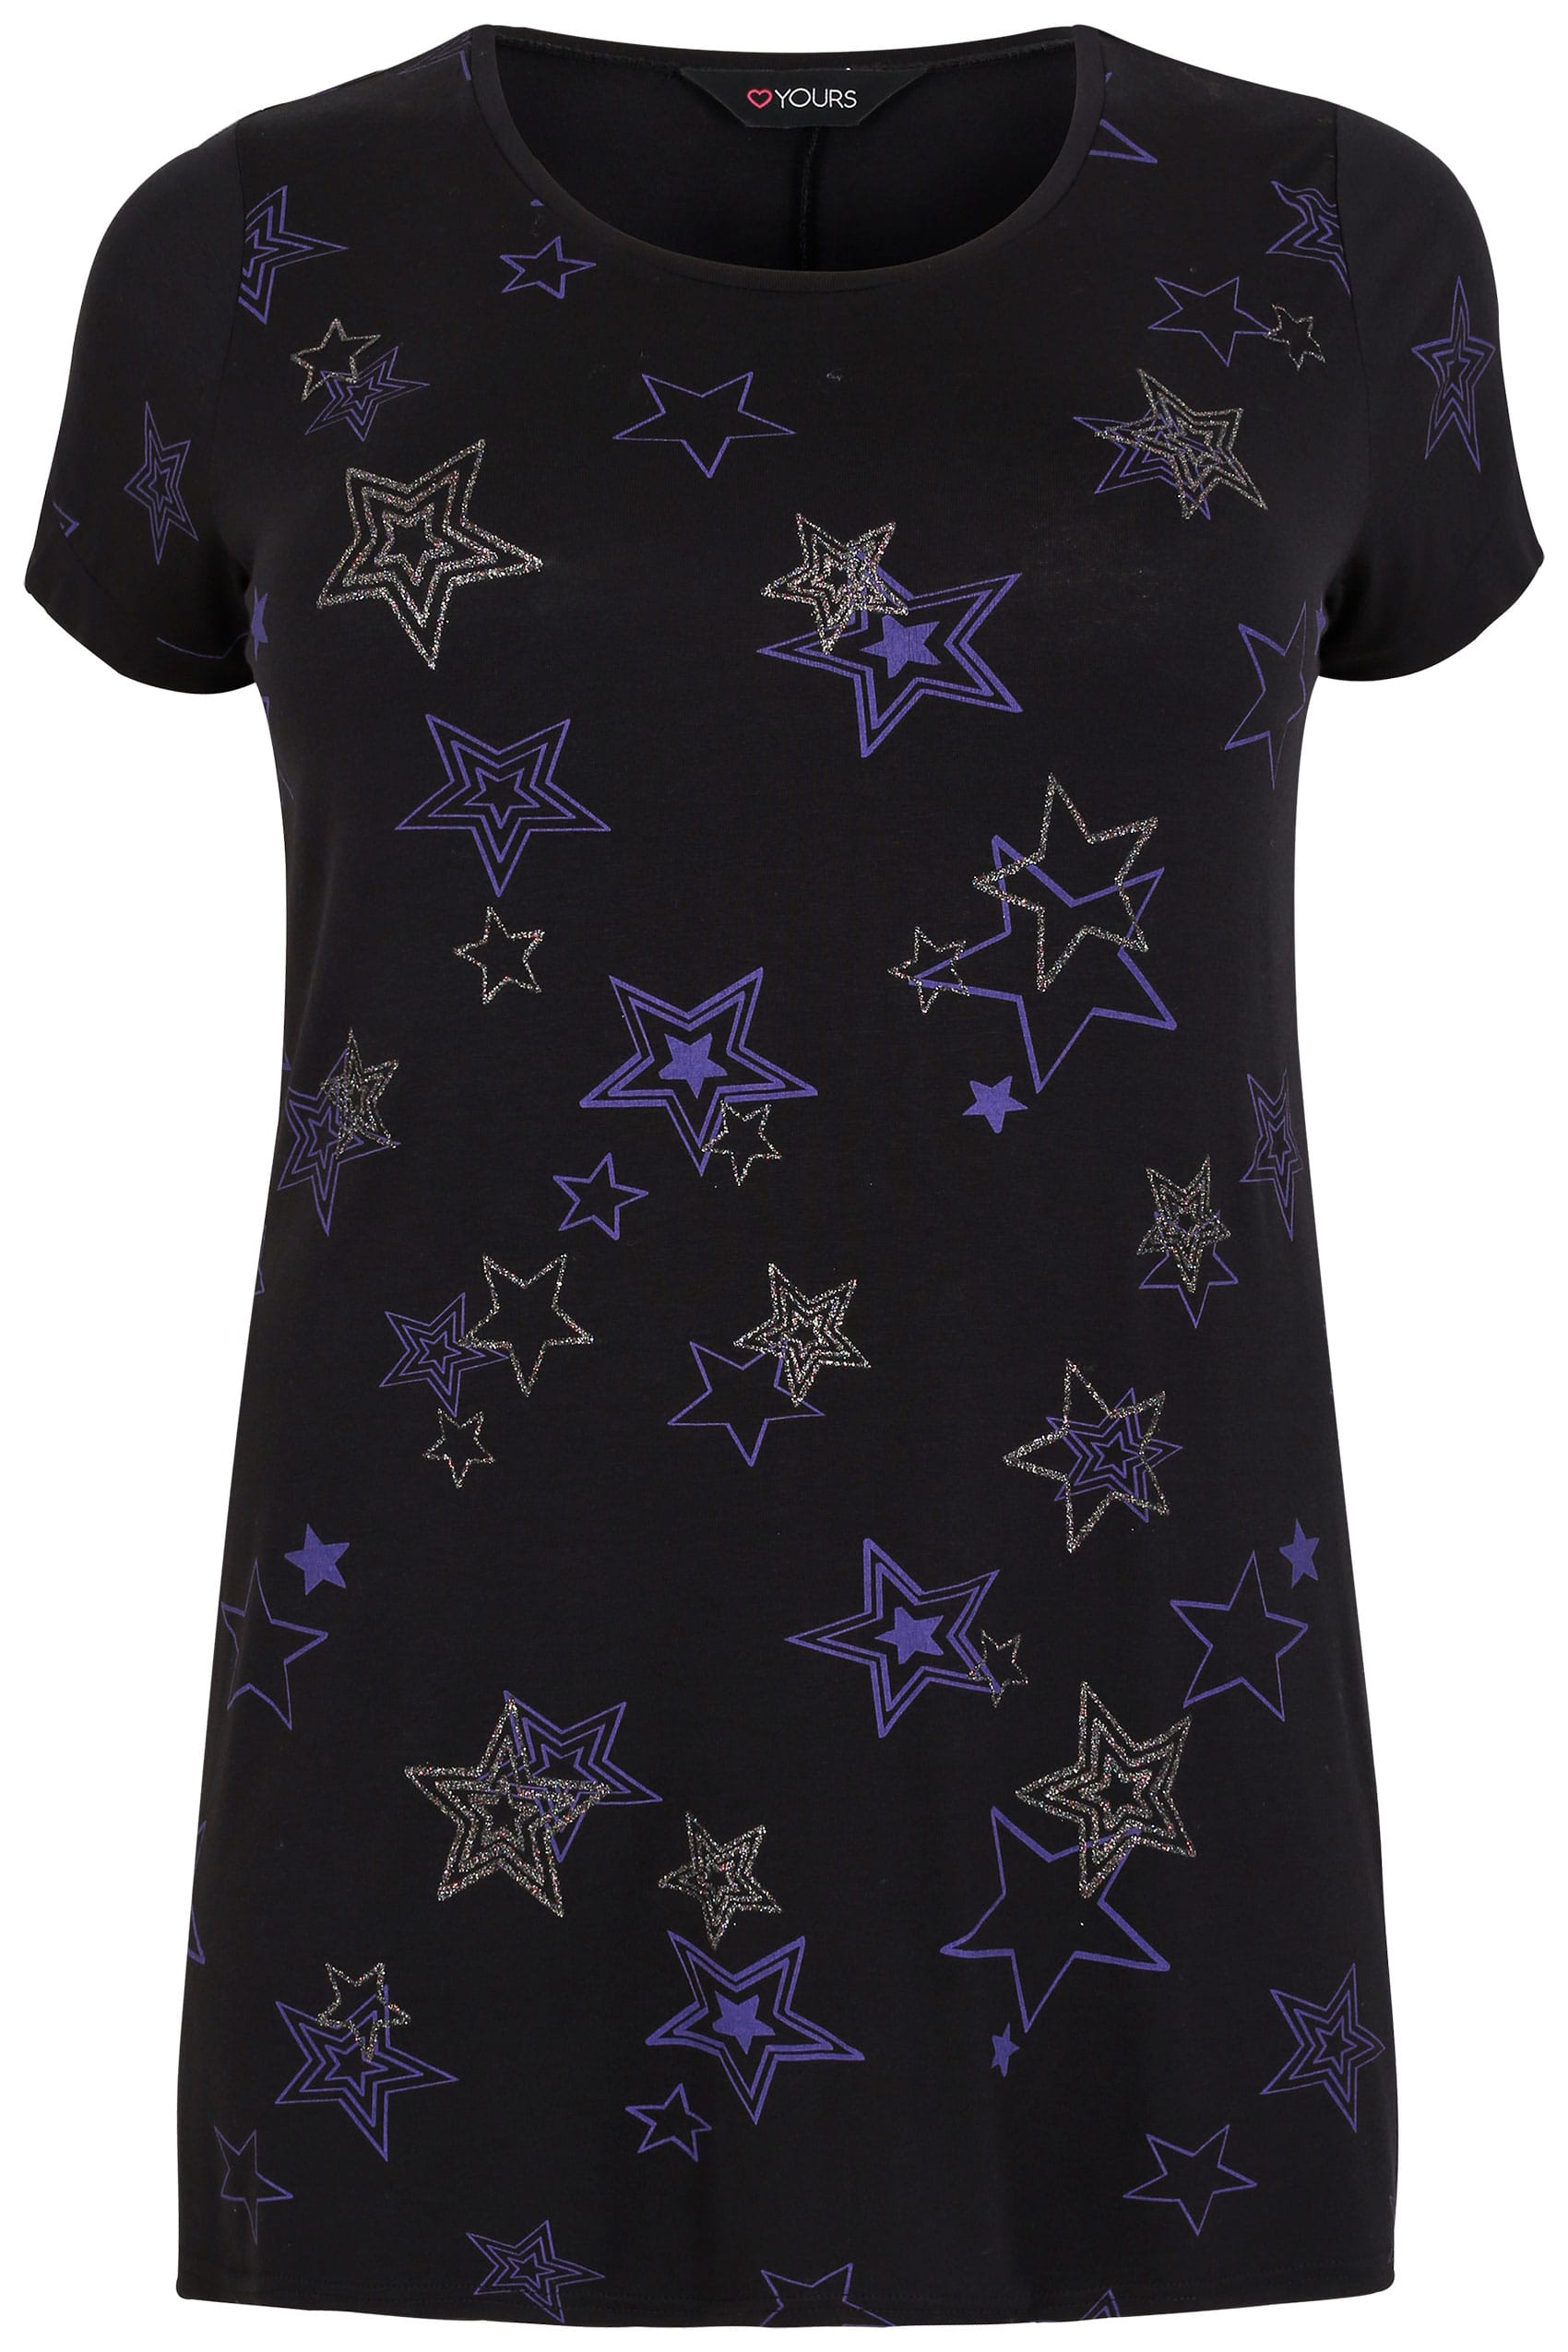 Black blue glitter star print t shirt plus size 16 to 36 for Quick print t shirts